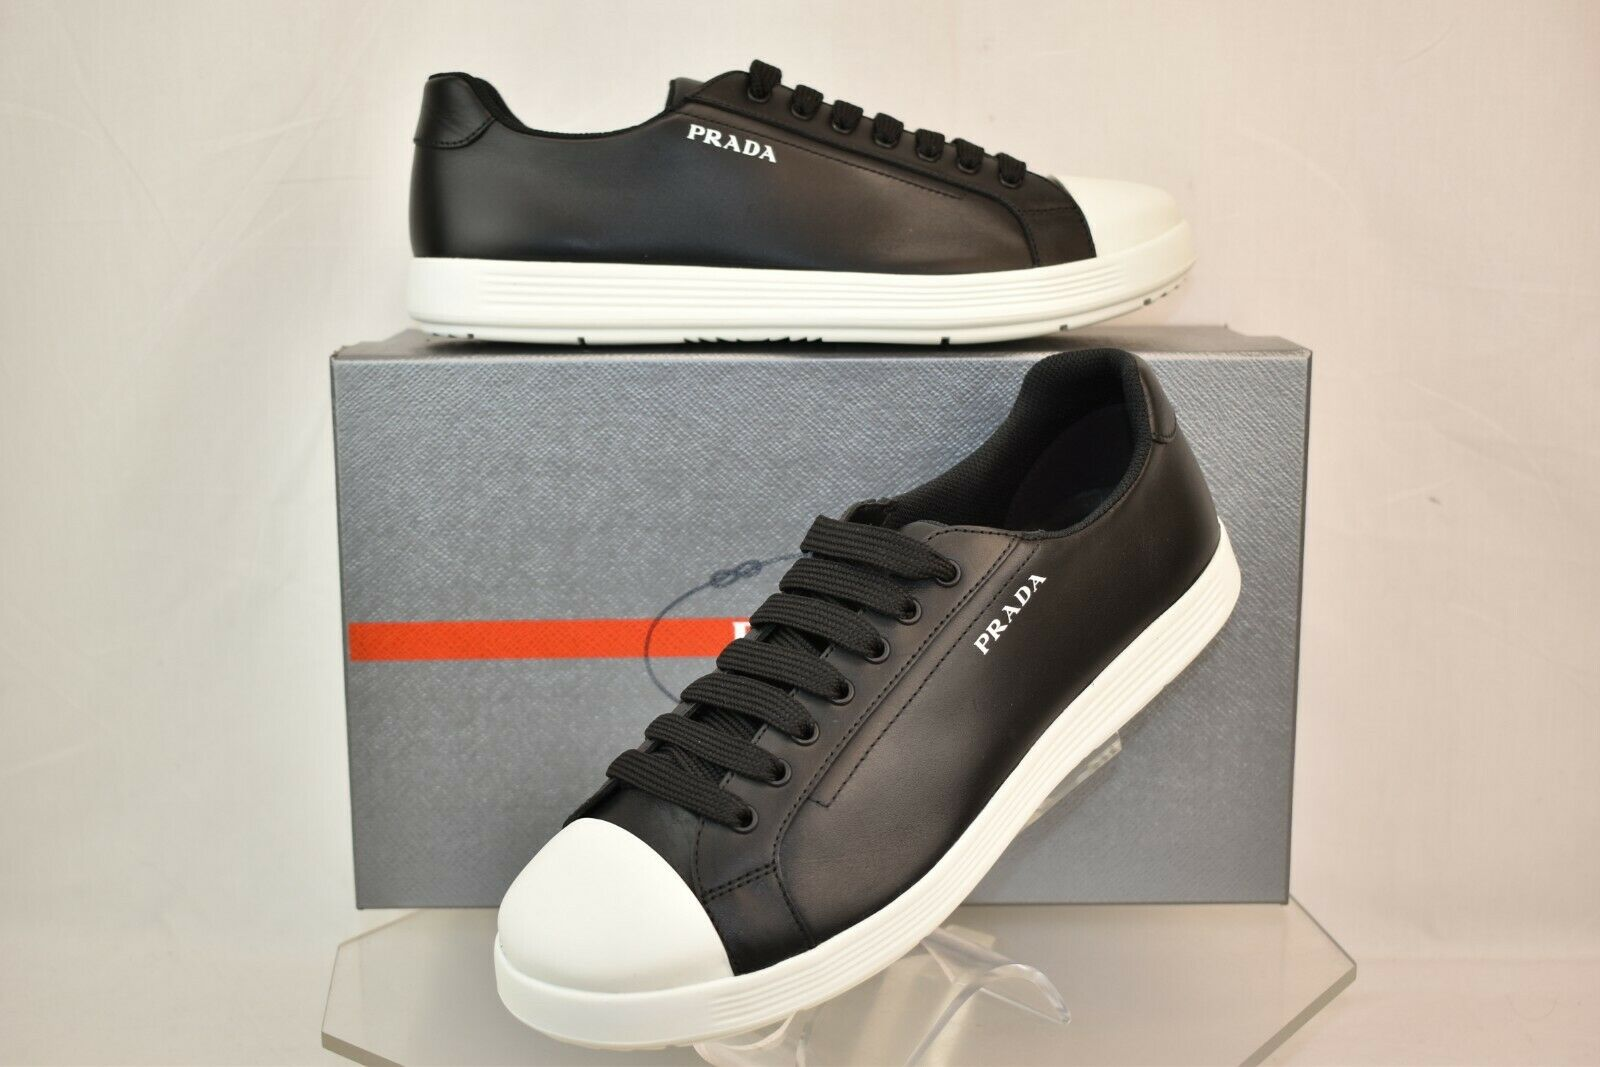 NIB PRADA nero LEATHER bianca RUBBER CAP TOE LOGO LOW TOP scarpe da ginnastica 10 US 11